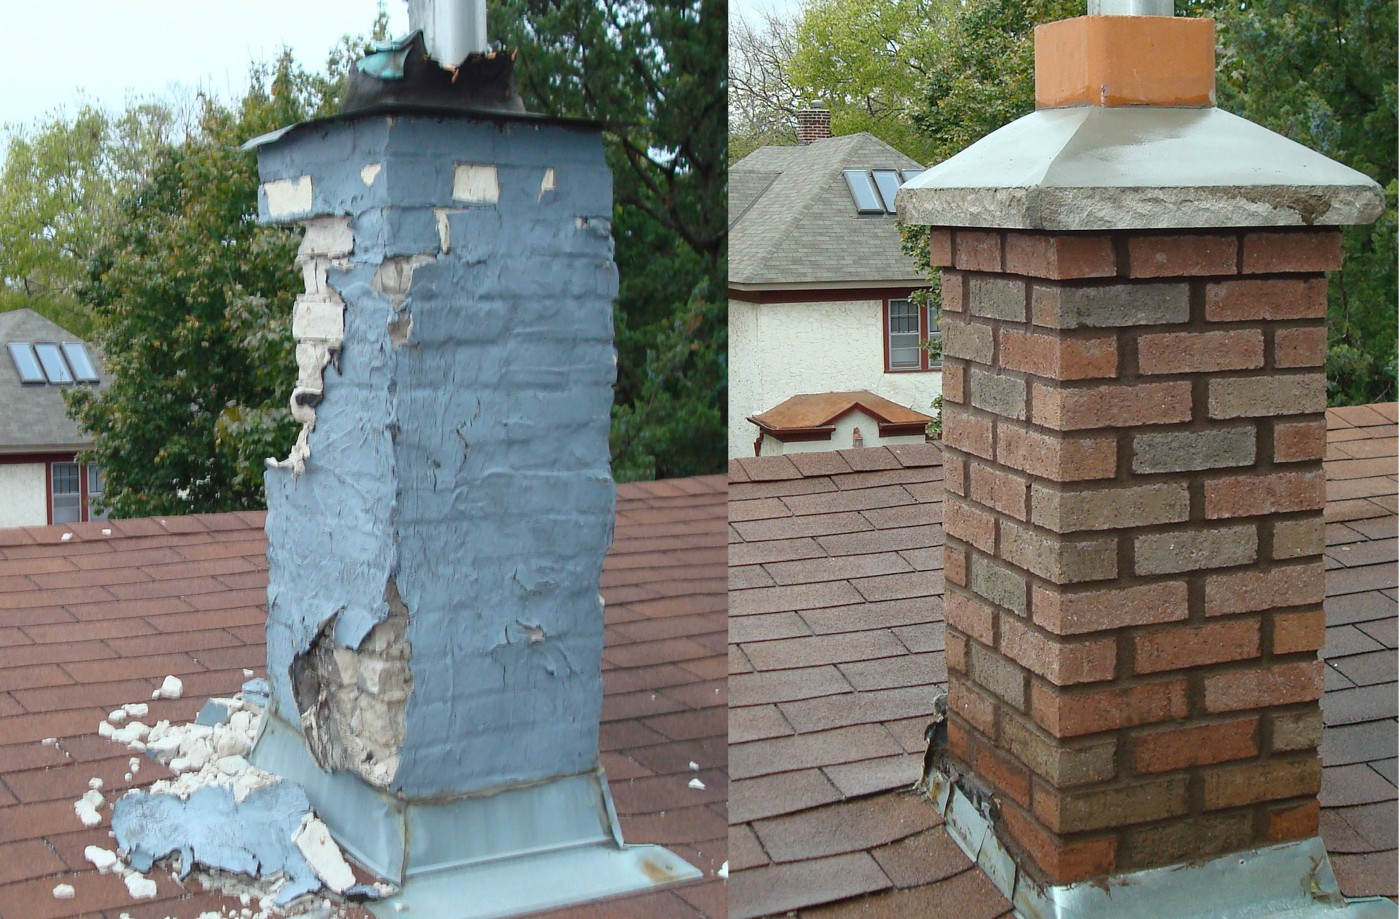 Before and after refactoring (chimney). Ref.: https://static.wixstatic.com/media/222c5c_c5c48d7d2ae54f08931baa6a8932f7a8~mv2_